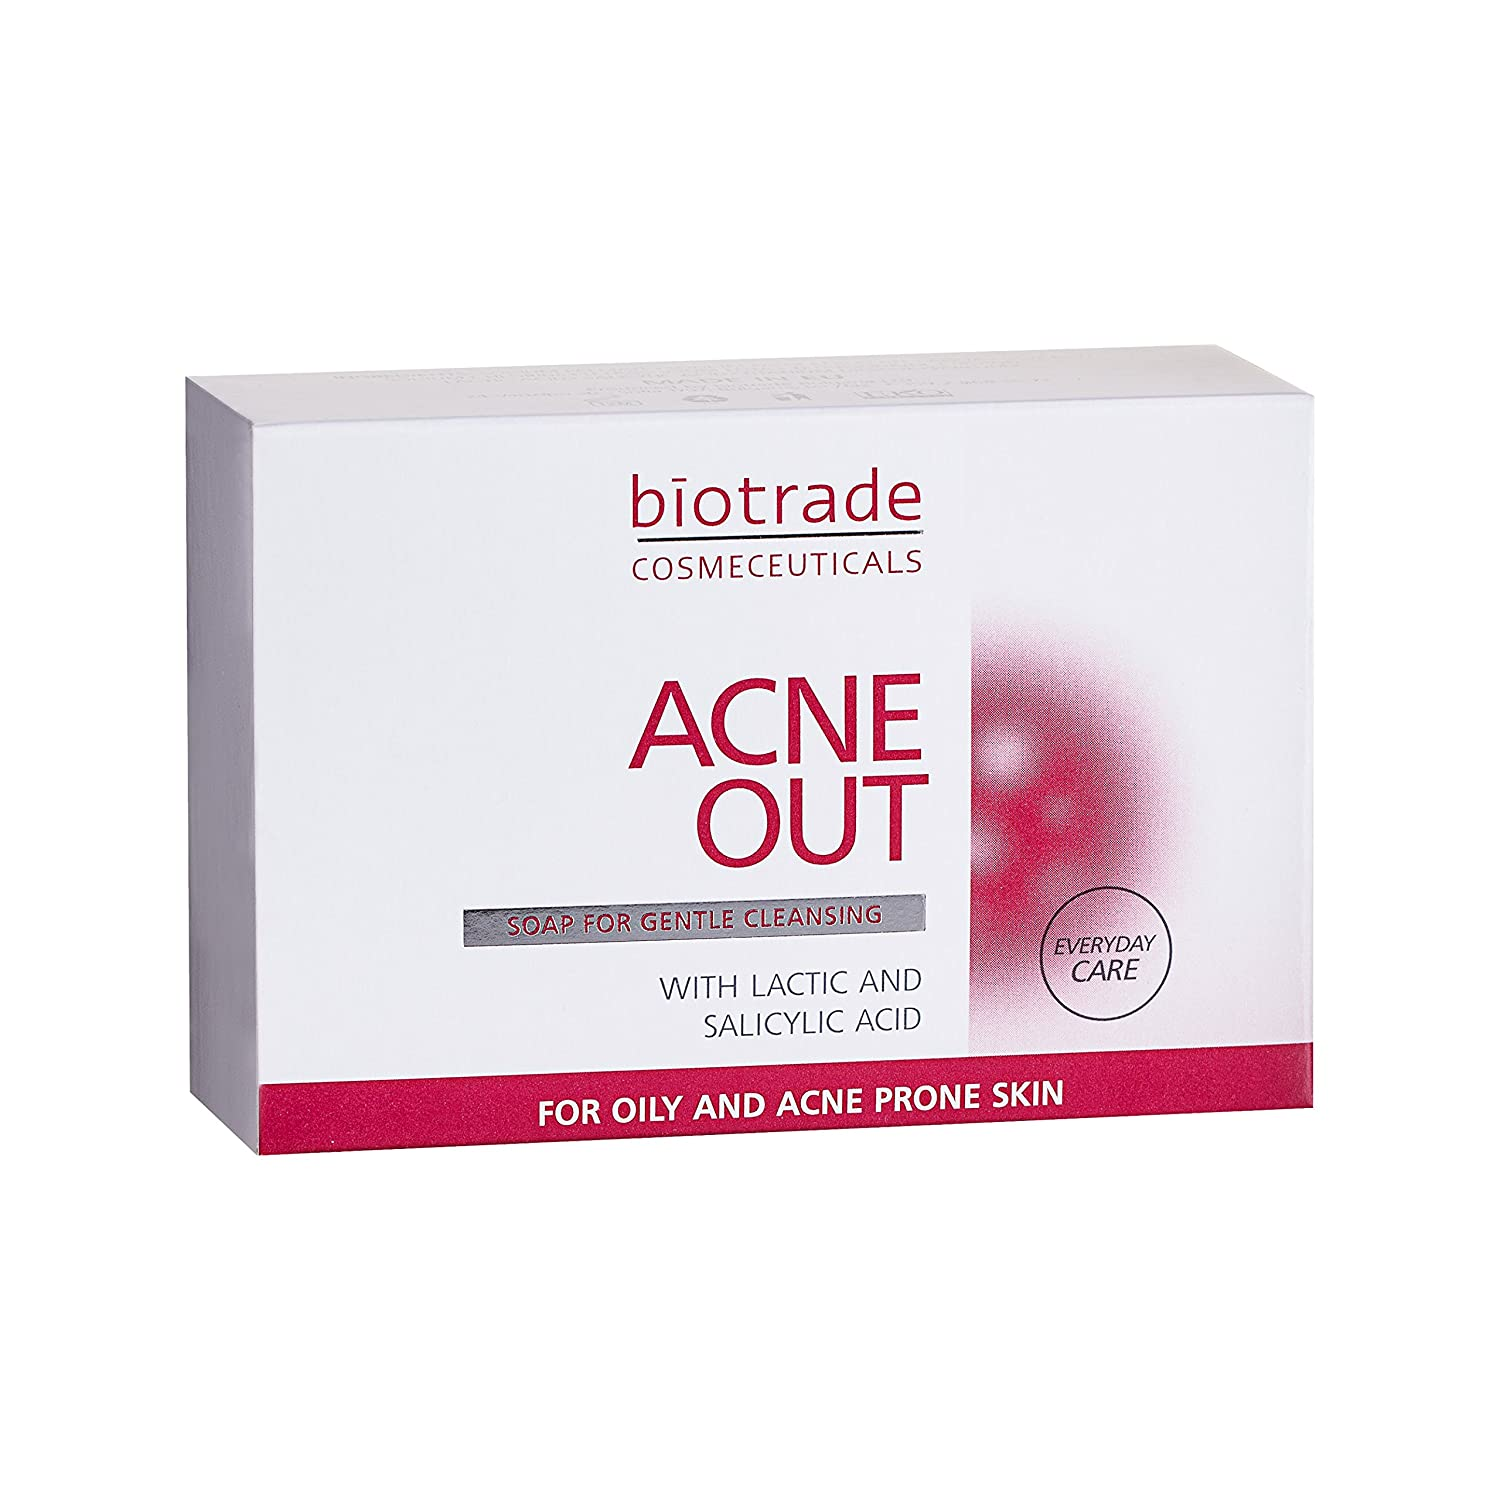 Acne Out Soap Bar 100g For Oily Skin with Pimples, Removes Blackheads and Impurities, Tightens Pores by Biotrade